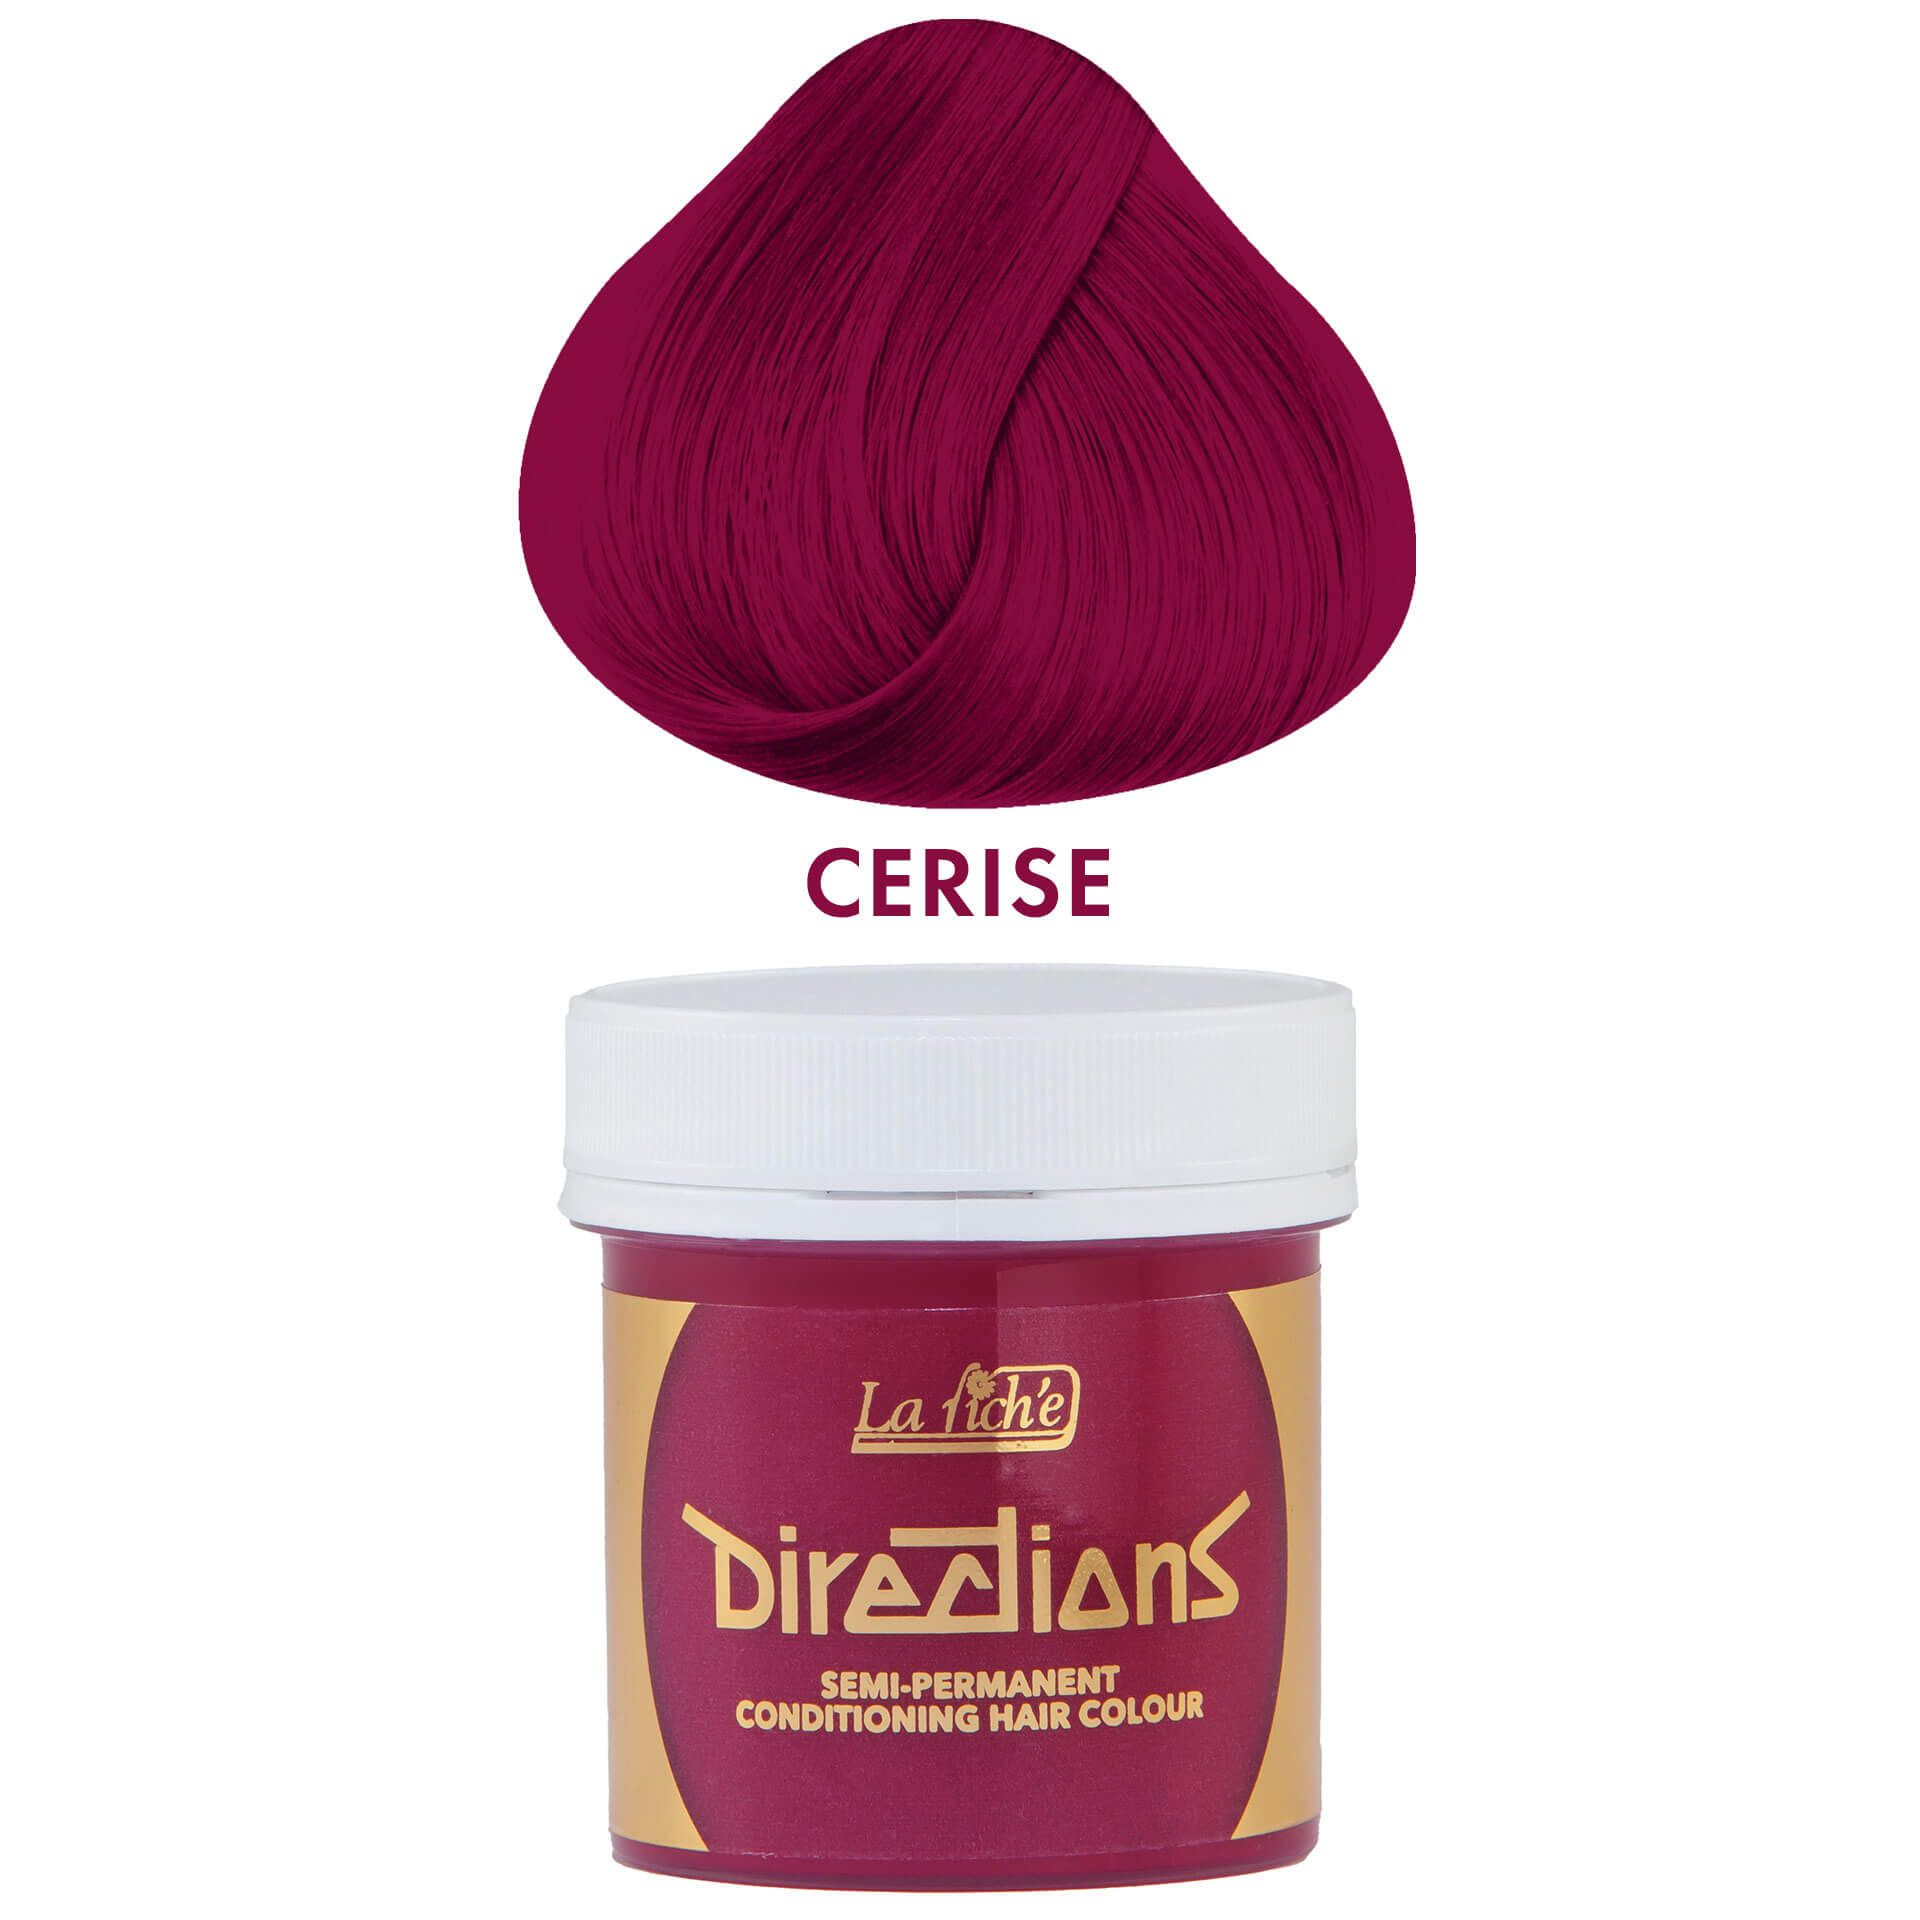 Cerise Hair Coloring Balsam